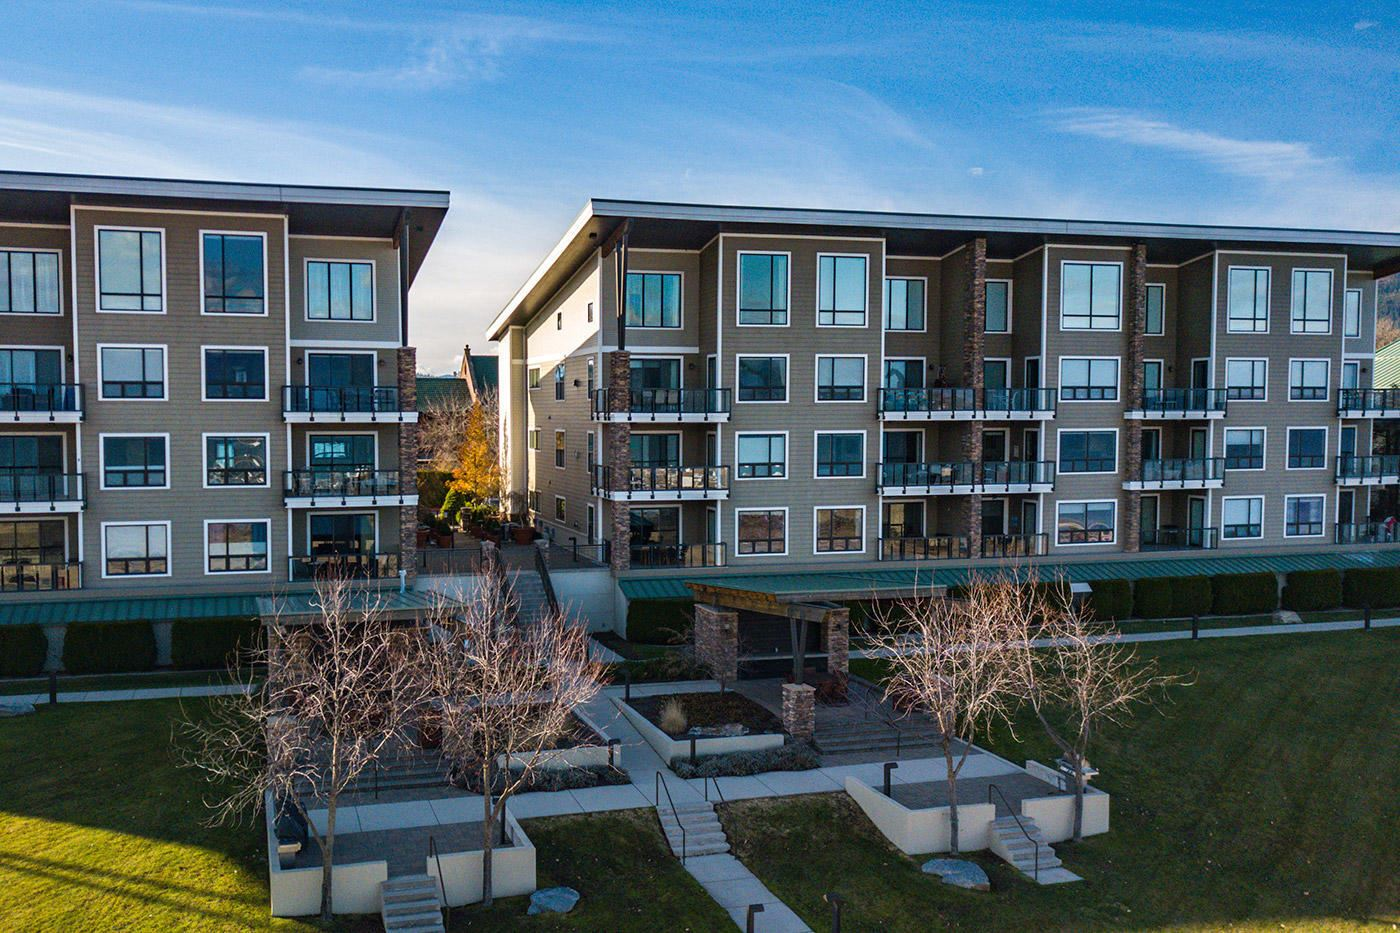 Photo of 412 Sandpoint Ave #332, Sandpoint, ID 83864 (MLS # 21-4452)